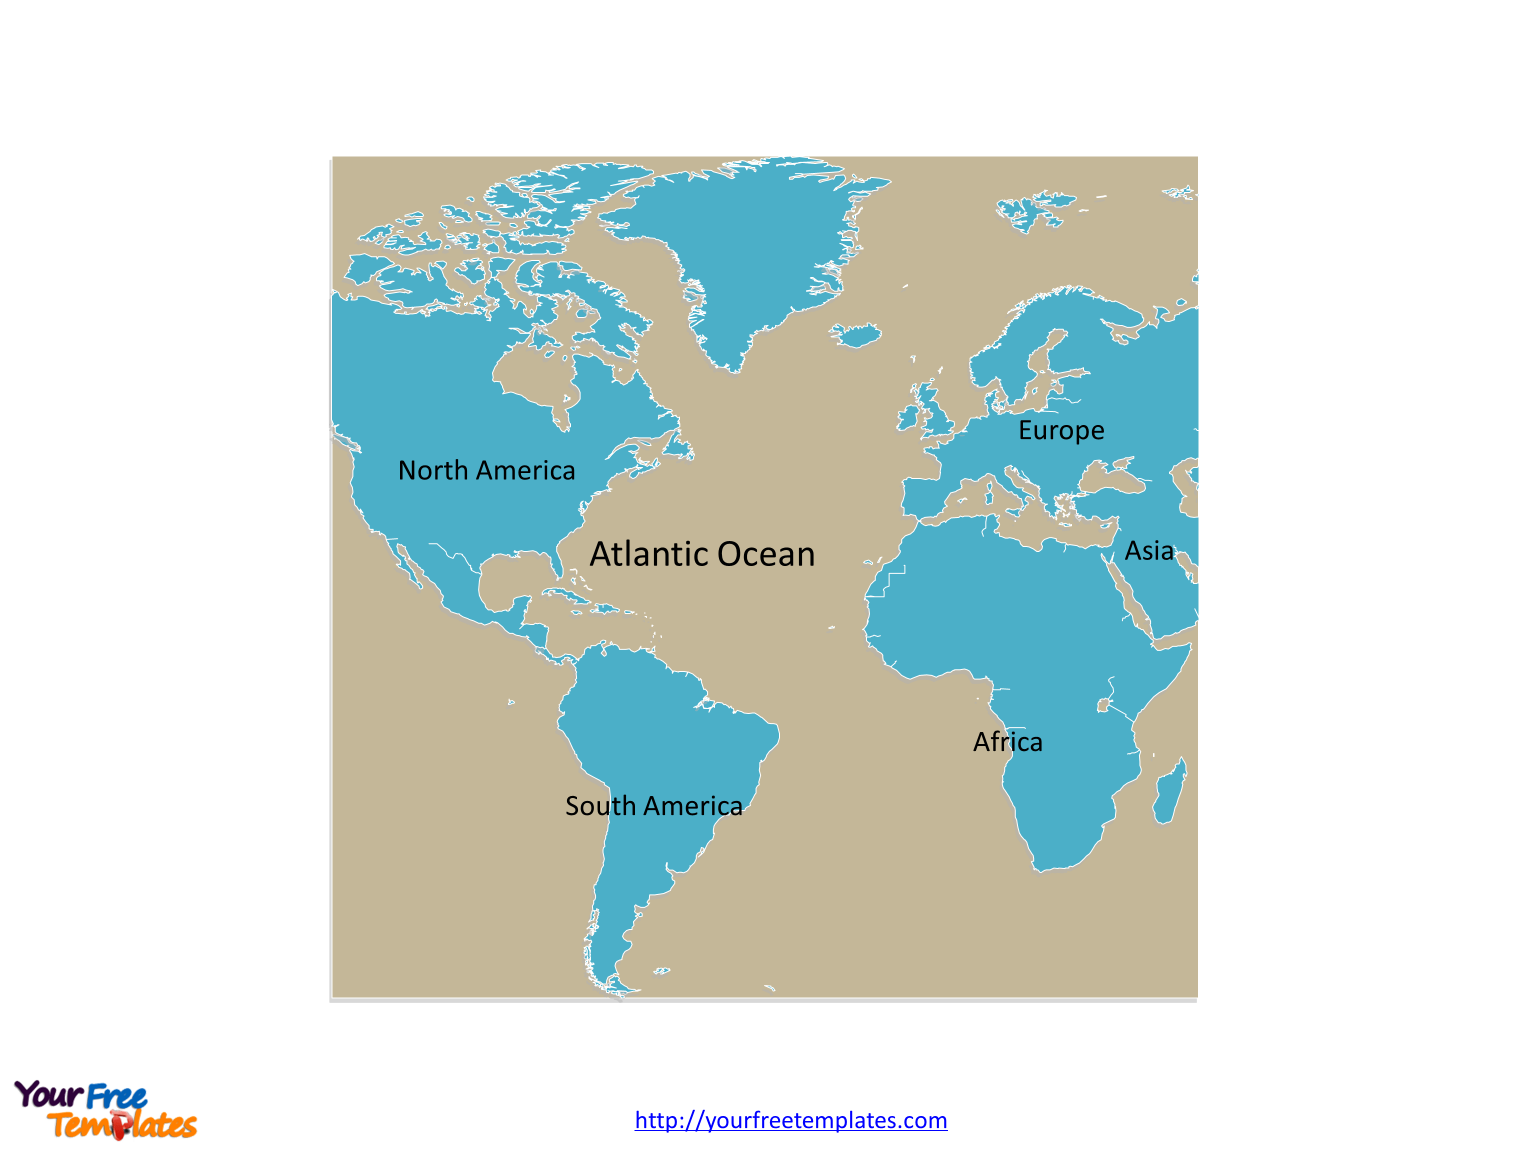 Atlantic Ocean map labeled with continent names